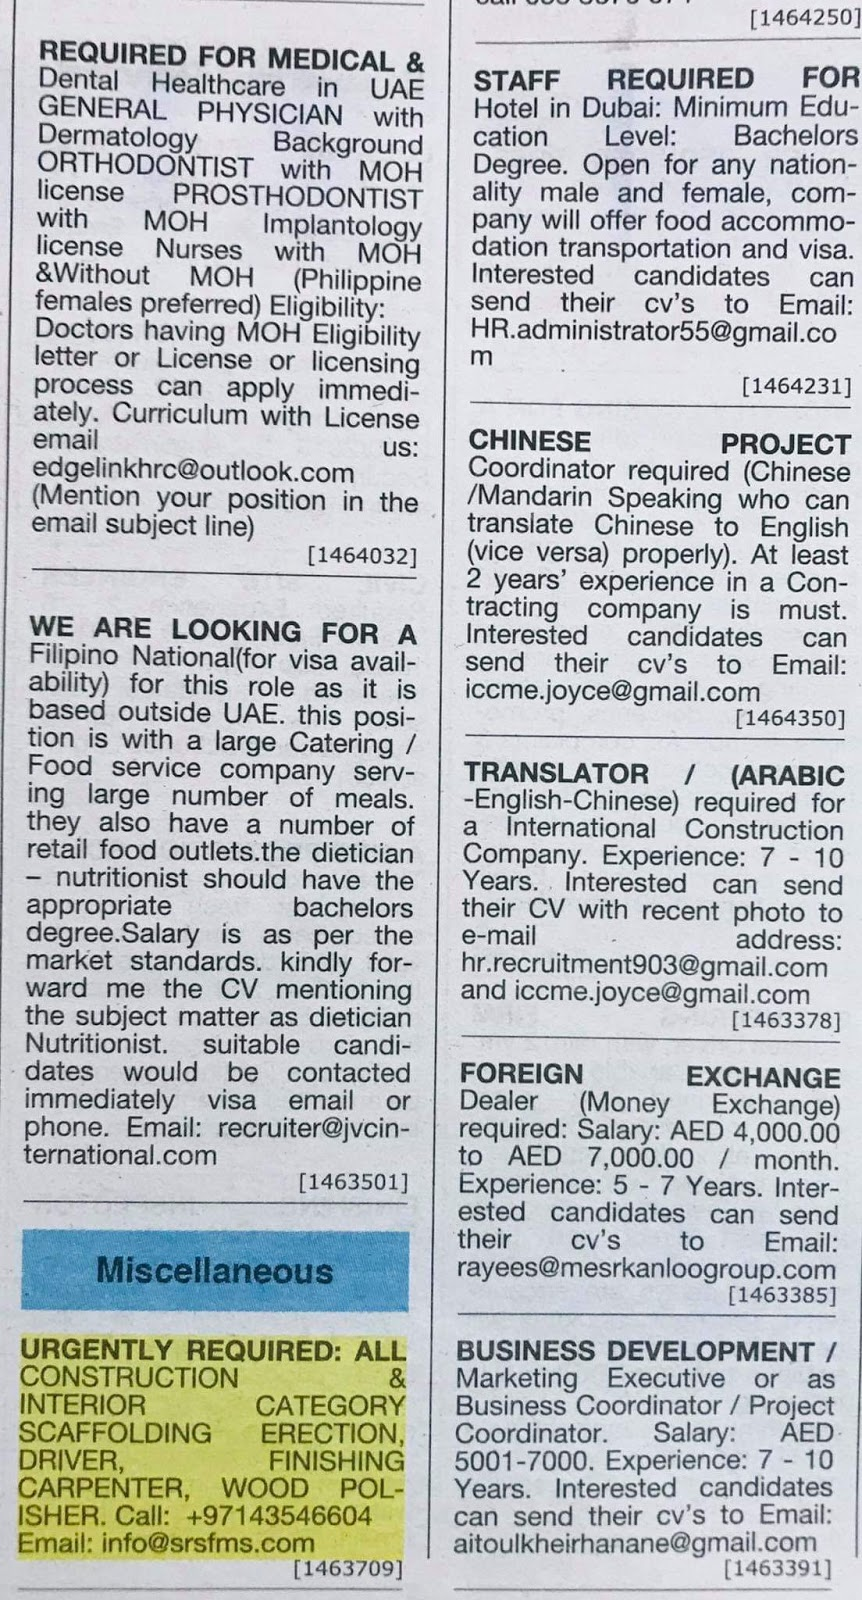 Required following Position for UAE Local Hiring Jobs